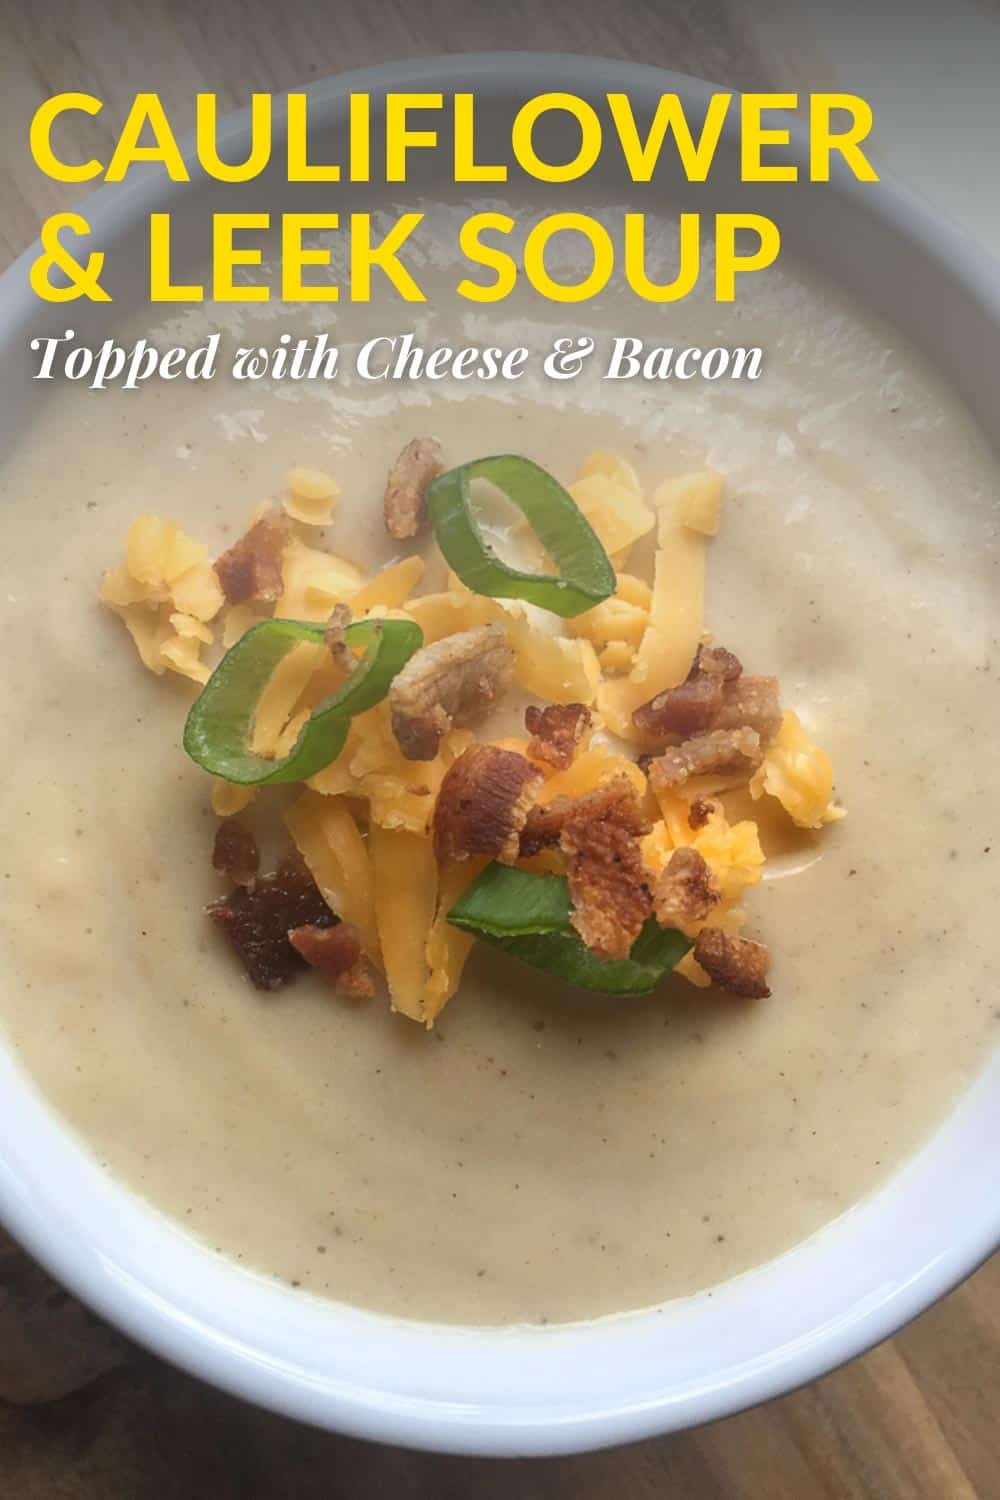 Cauliflower-Leek-Soup-Topped-with-Cheese-Bacon